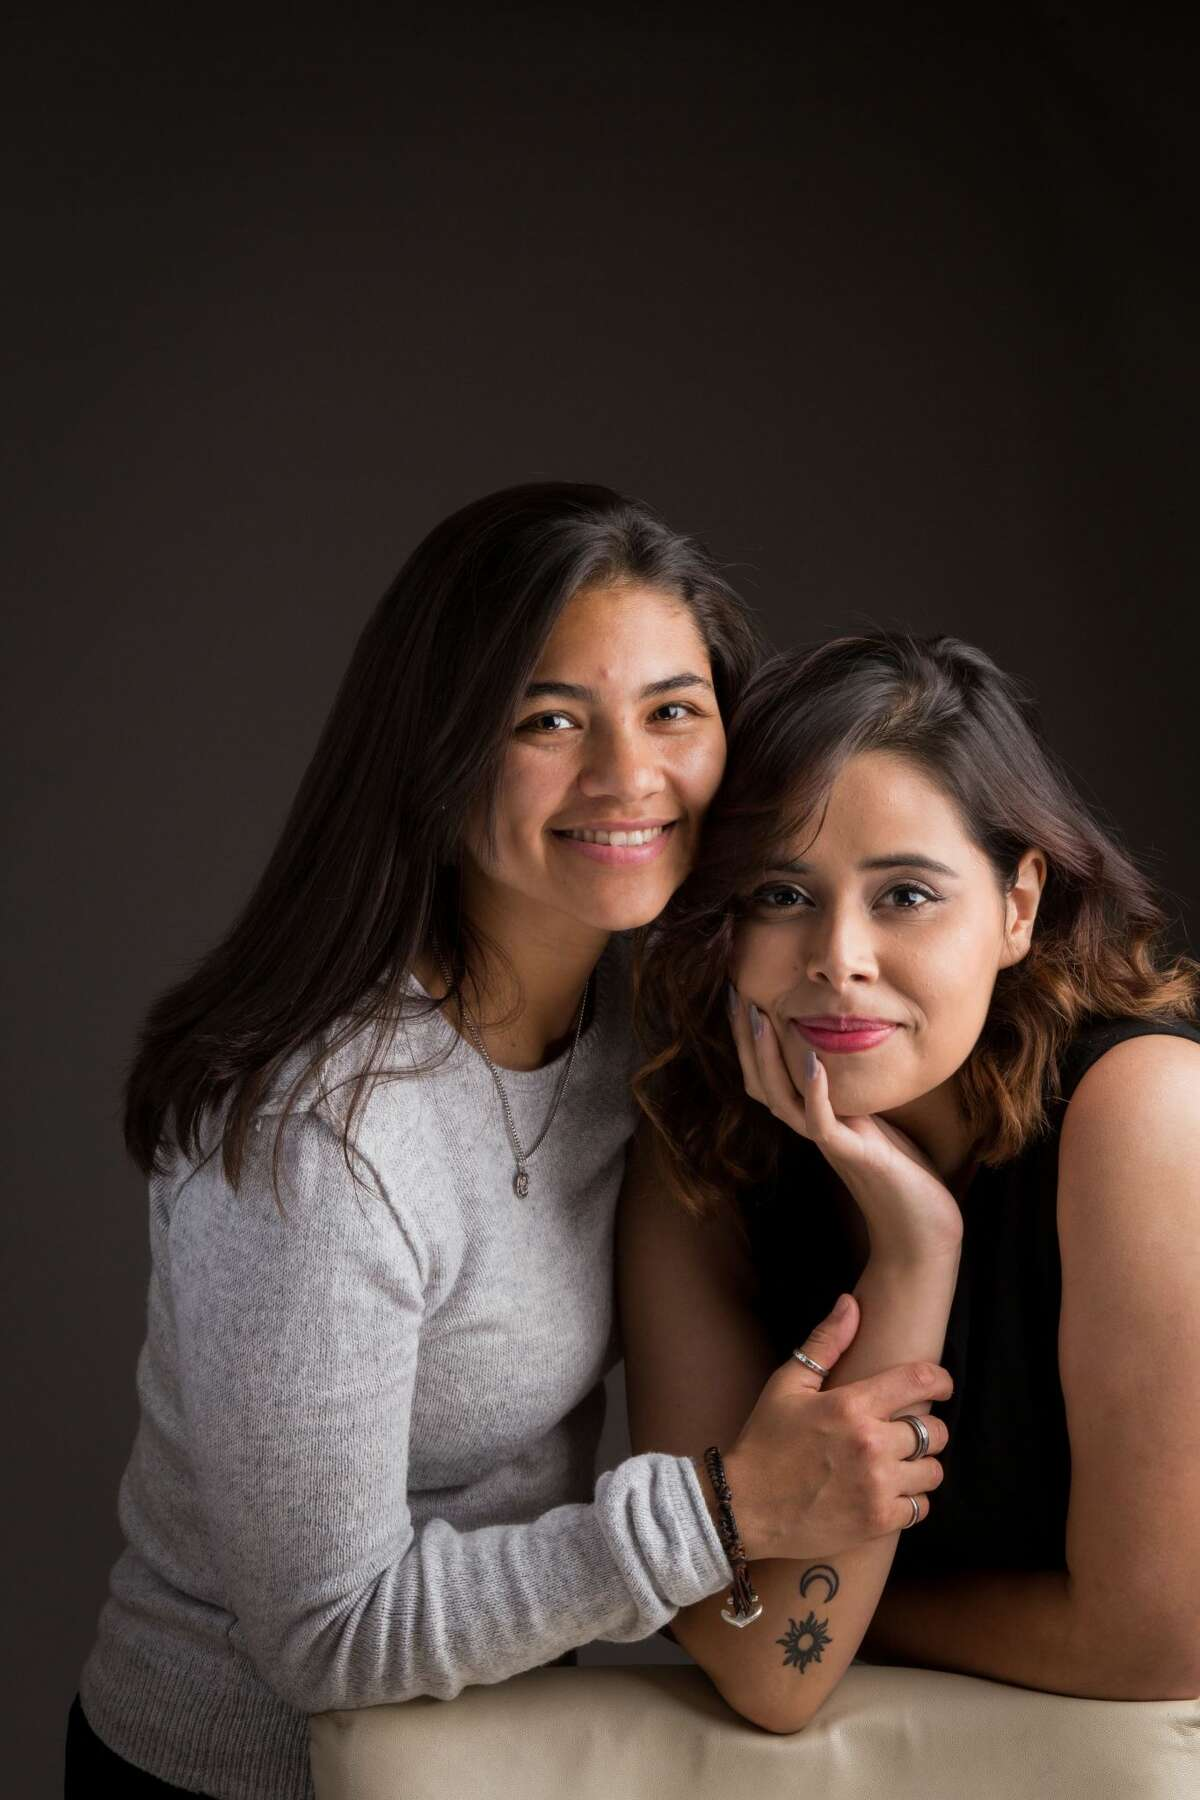 Alyssa Lopez, left, and Evelin Lopez got engaged in March 2018 on their one year anniversary. Alyssa proposed to Evelin next to Lake Travis by placing a ring on a Harry Potter wand and asking Evelin if she wanted to make an